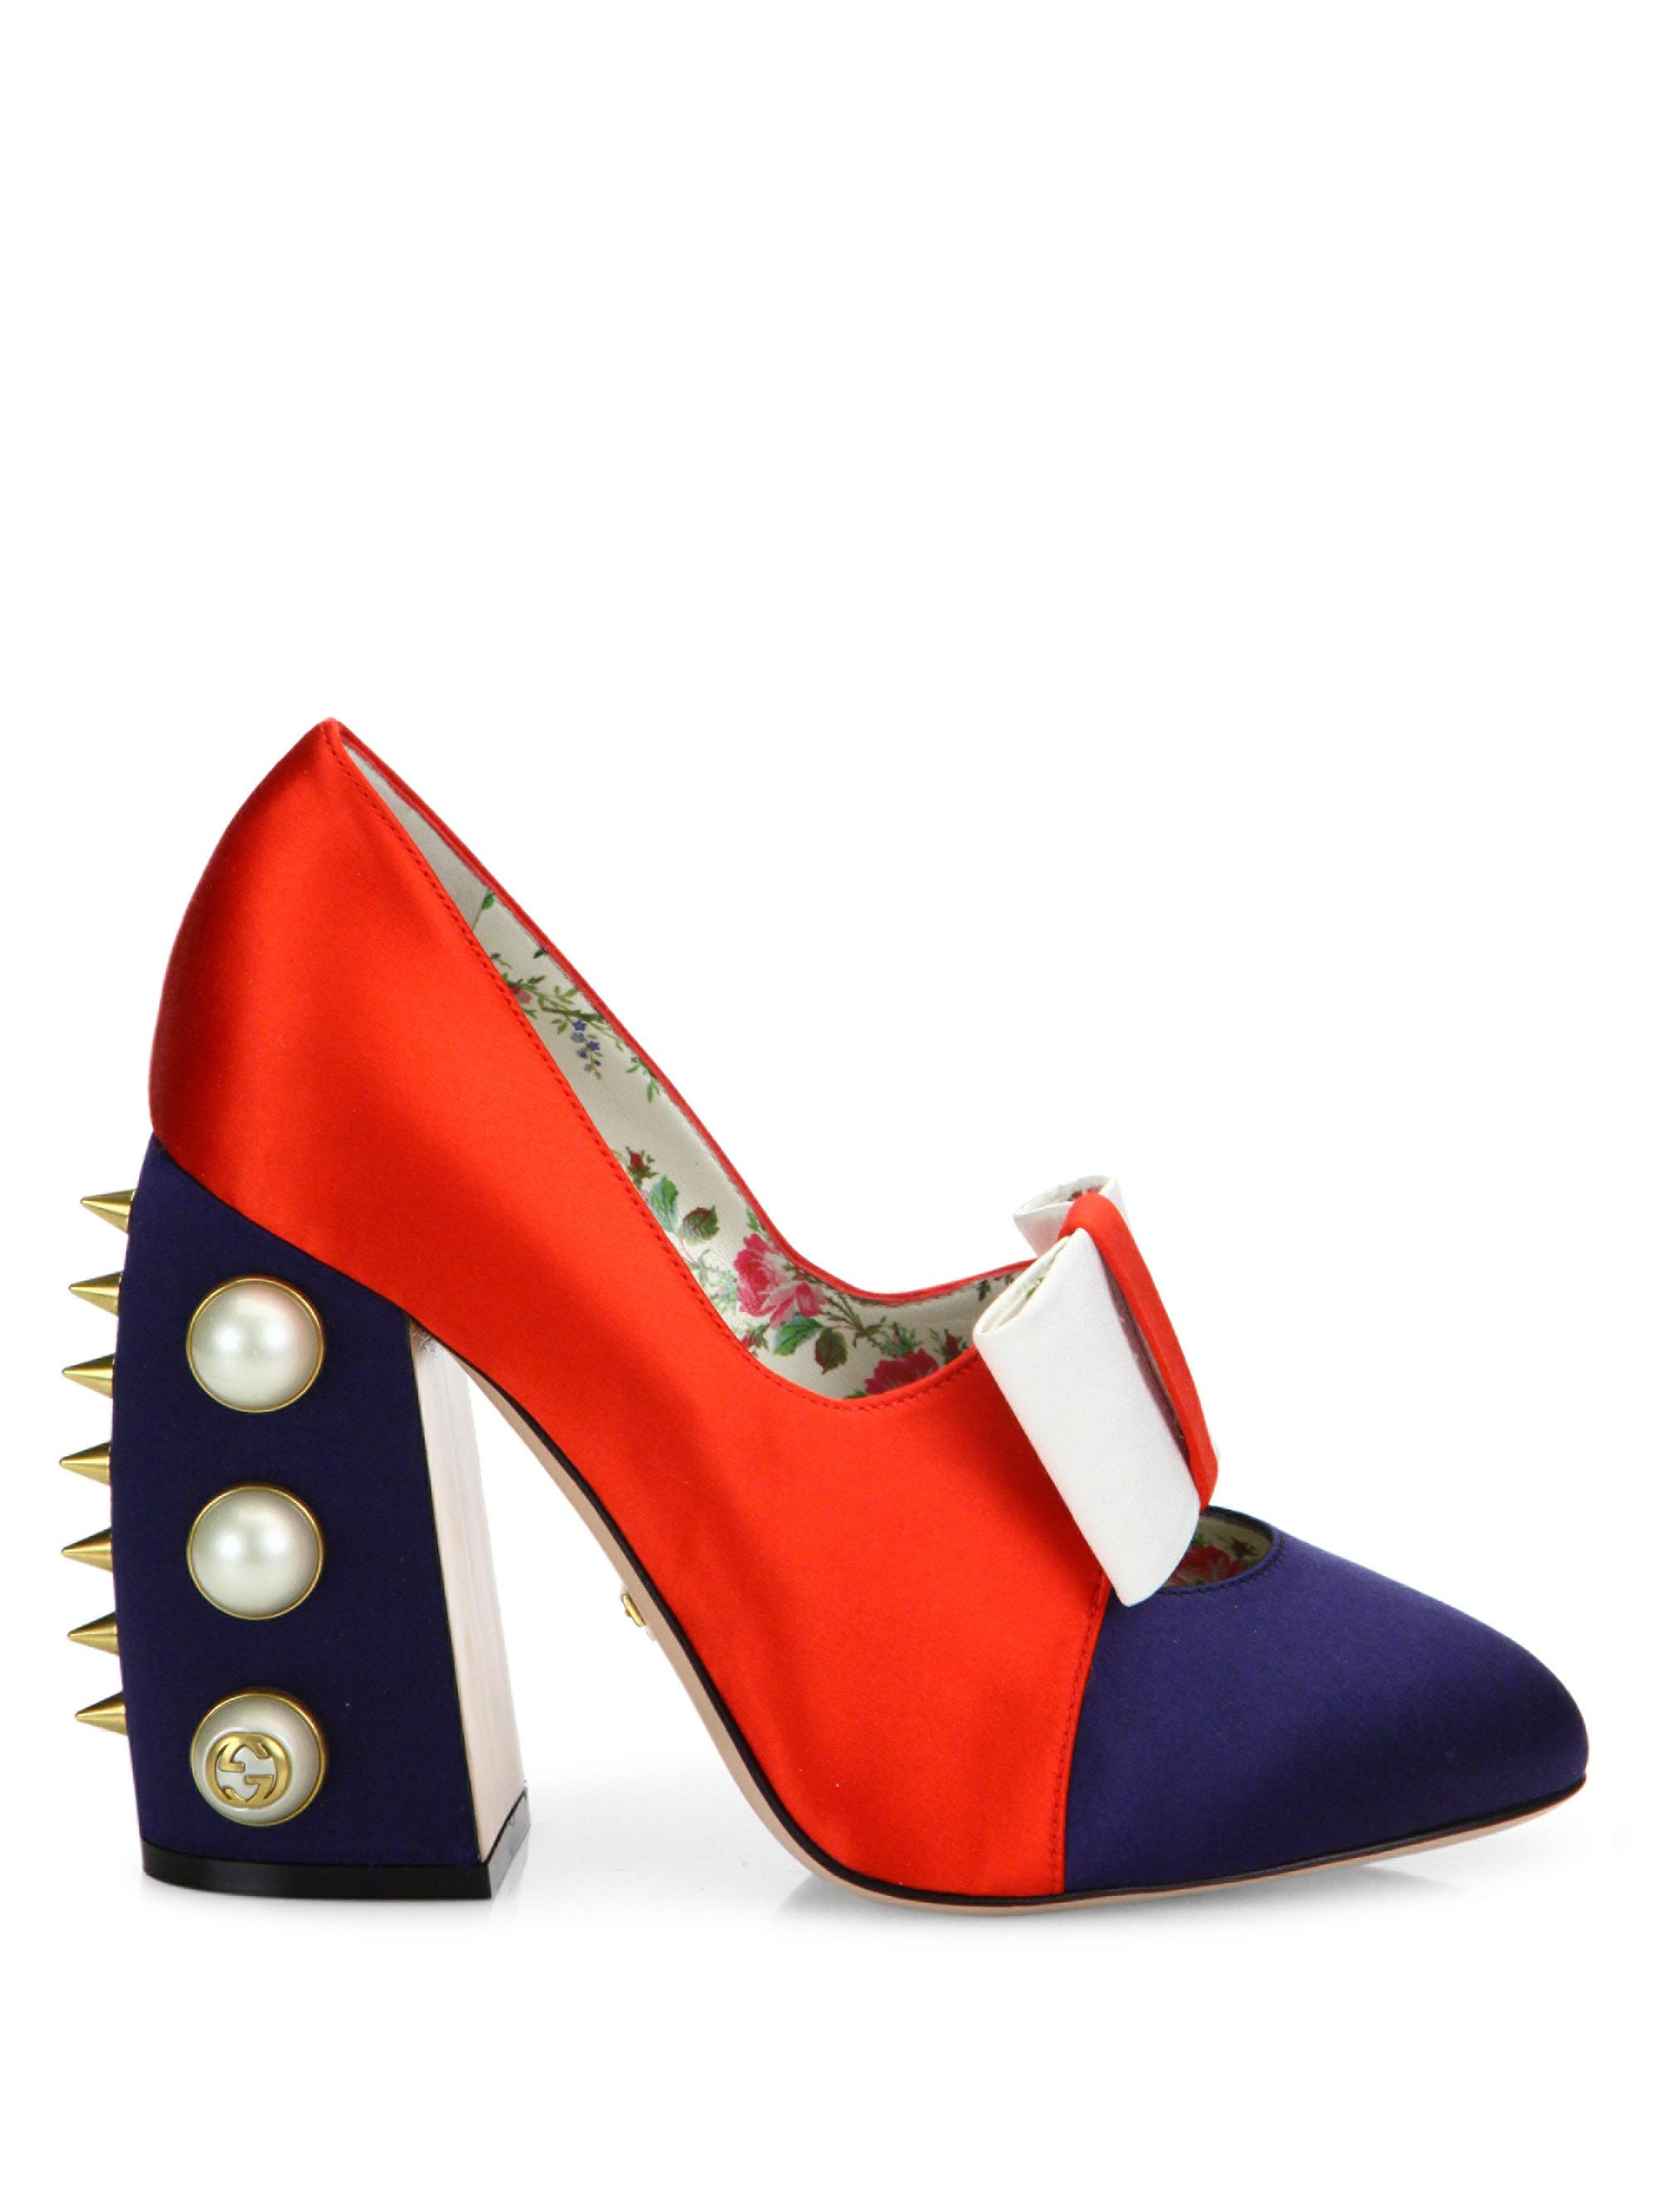 971731027f1 Lyst - Gucci Luna Studded Block Heel Colorblock Satin Pumps in Red